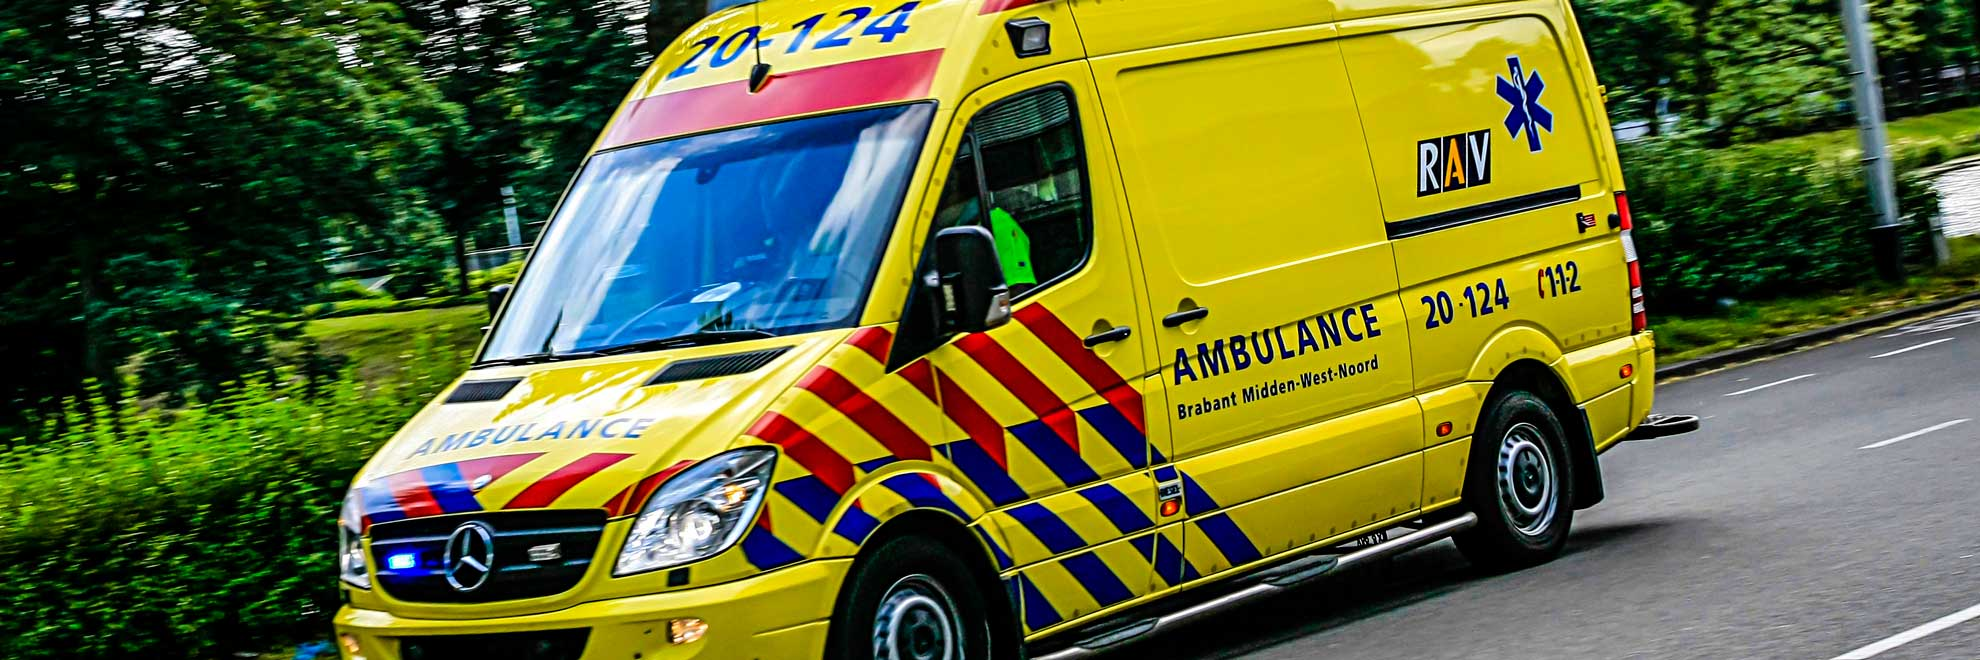 ambulance netherlands